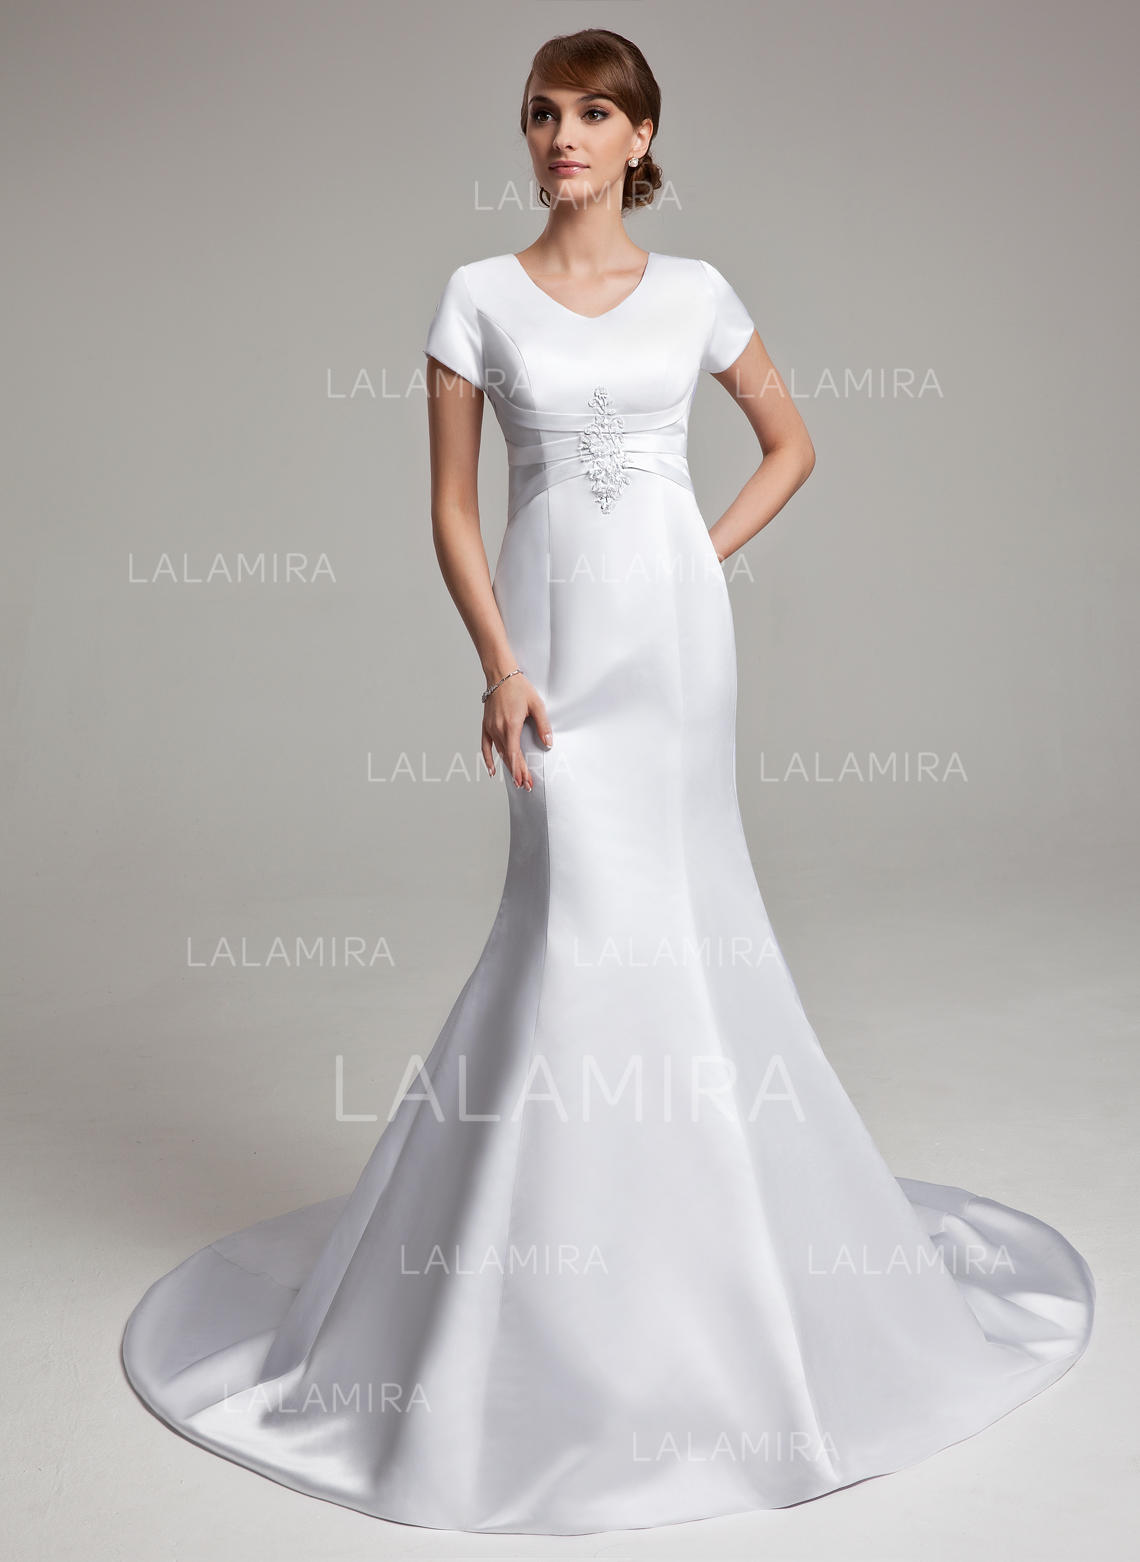 311b900476289 Satin Sleeves Chapel Train Chic Wedding Dresses (002001670). Loading zoom